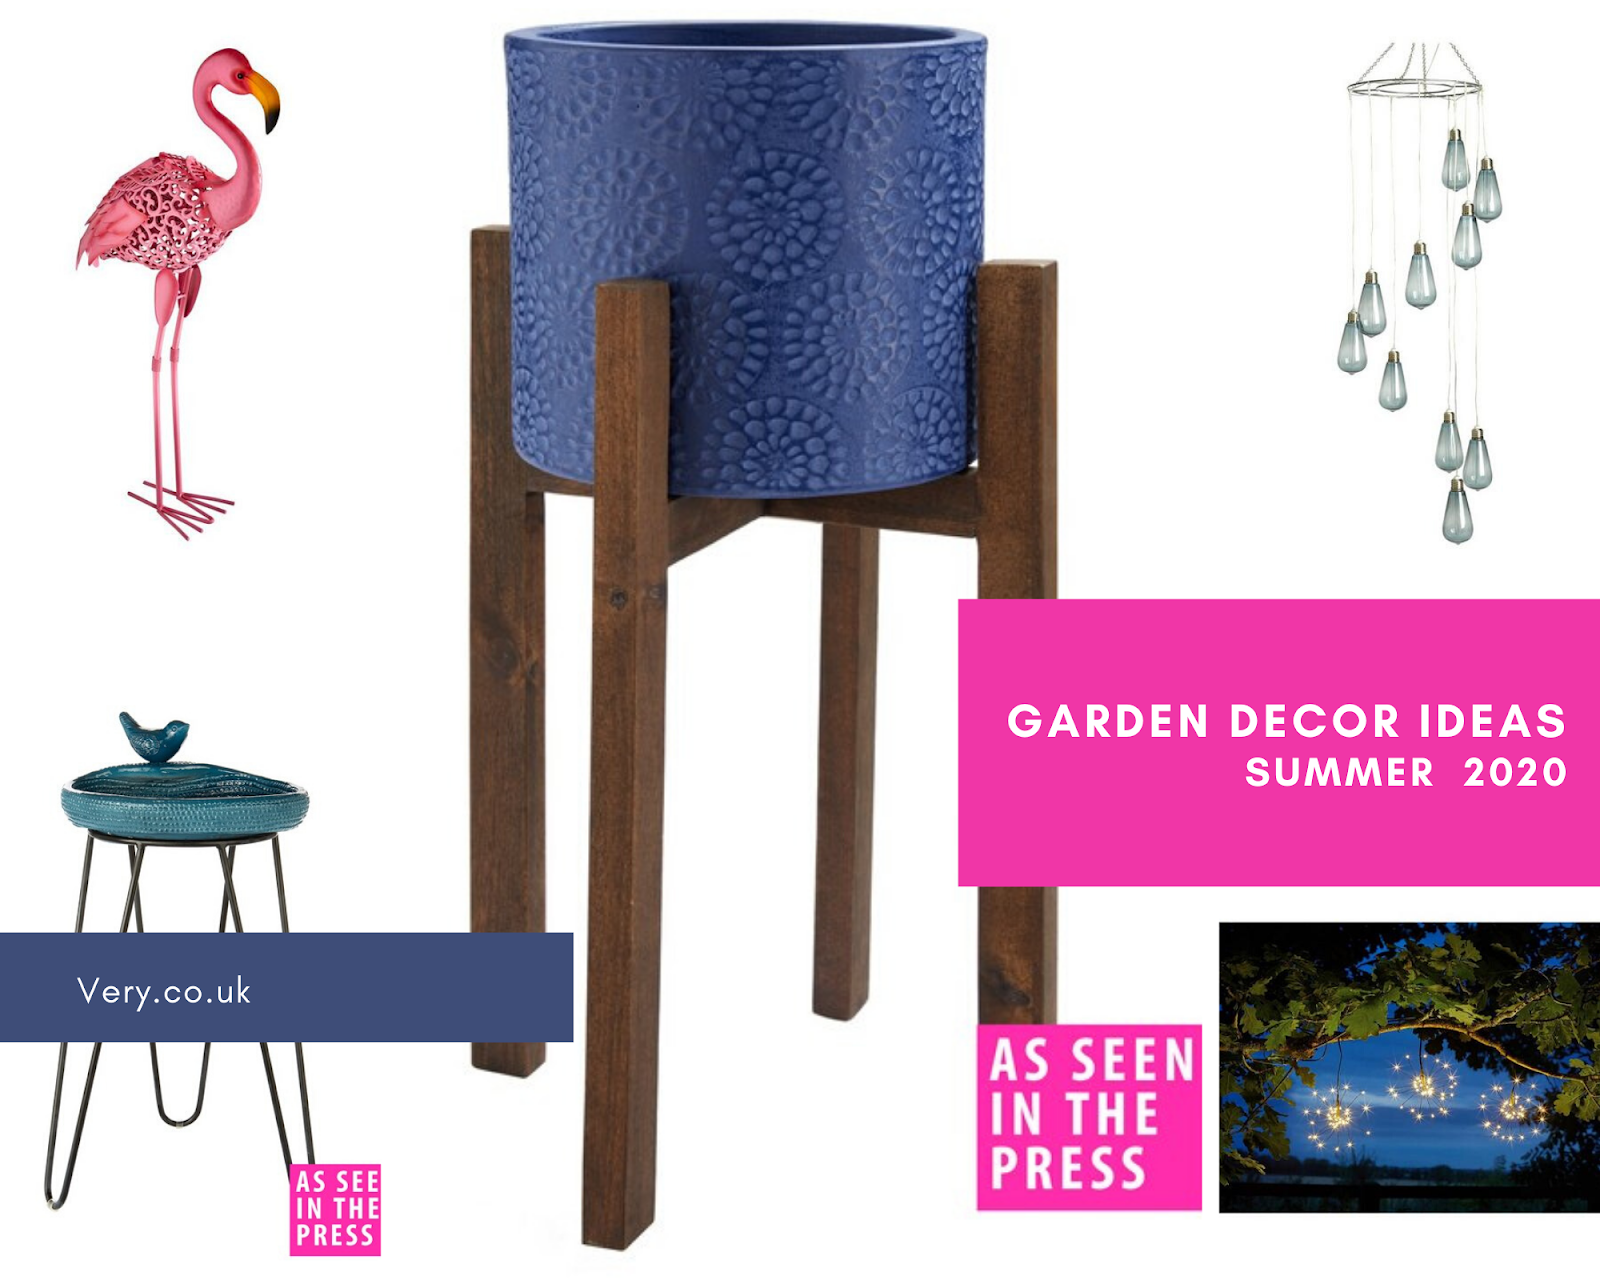 8 Easy Ways to Have Fun in your Garden this Summer  - garden decor ideas from very.co.uk